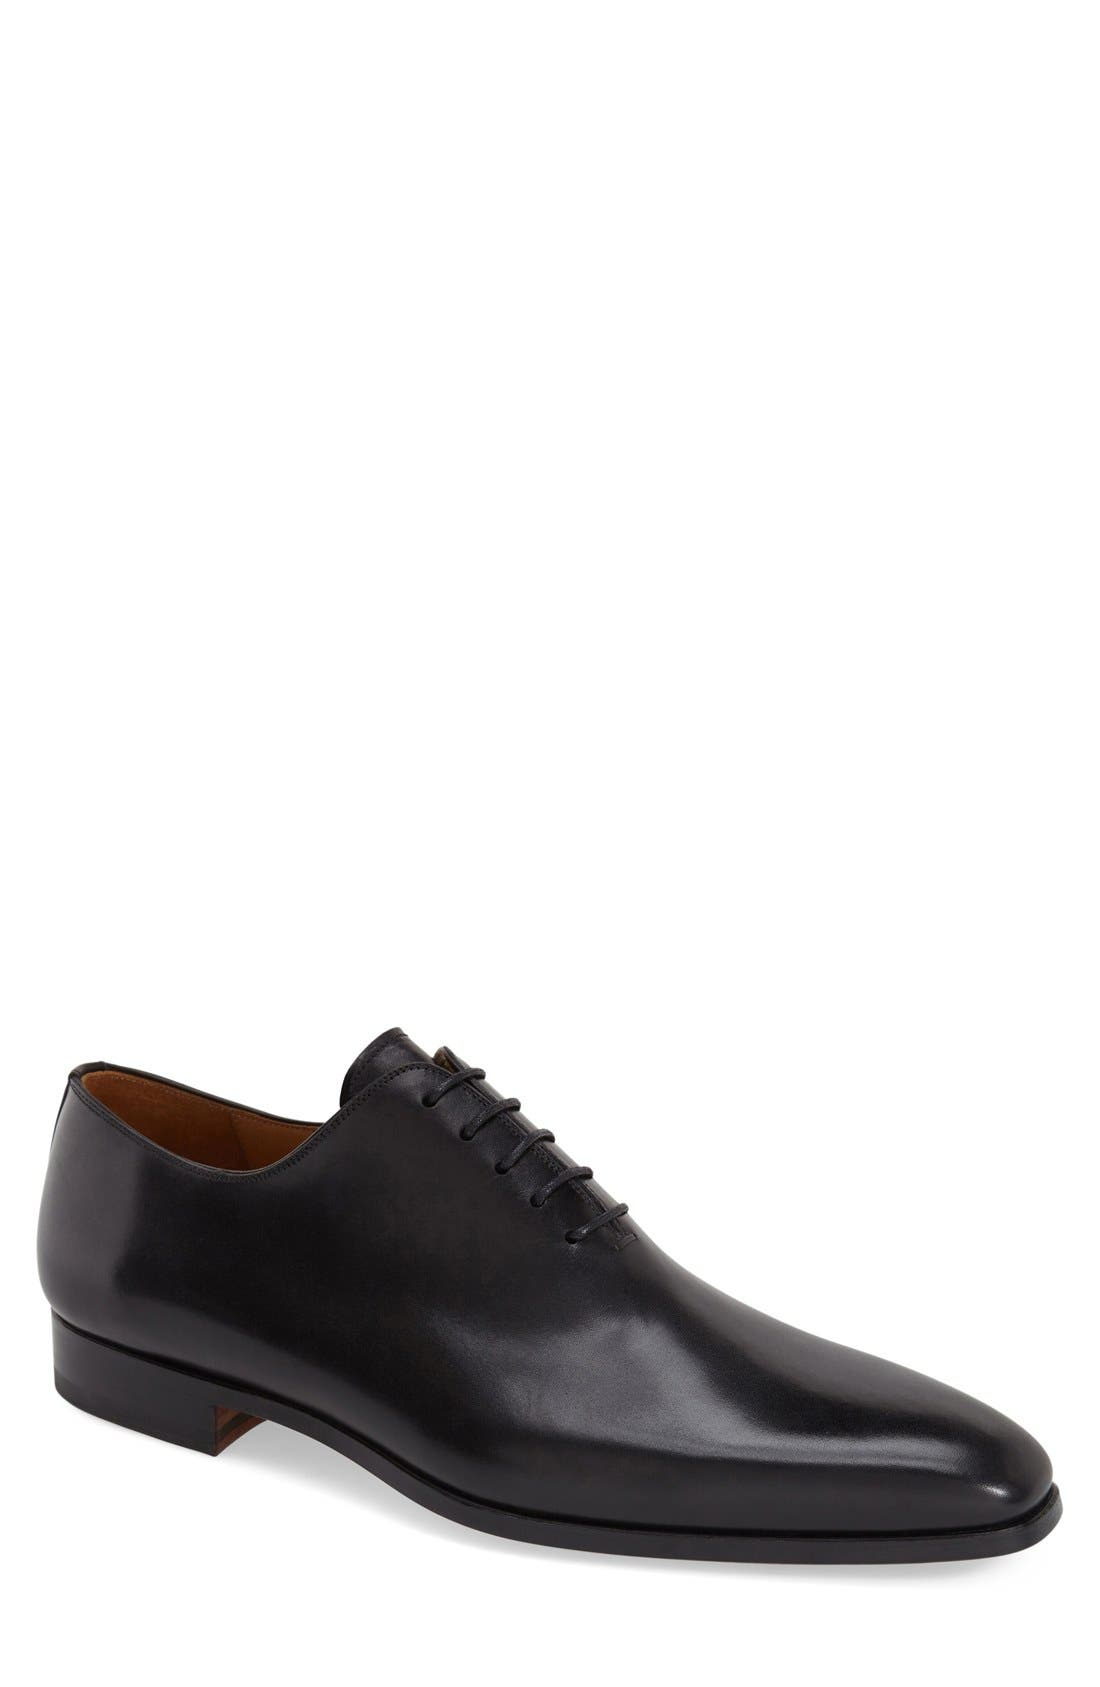 Main Image - Magnanni 'Cruz' Plain Toe Oxford (Men)